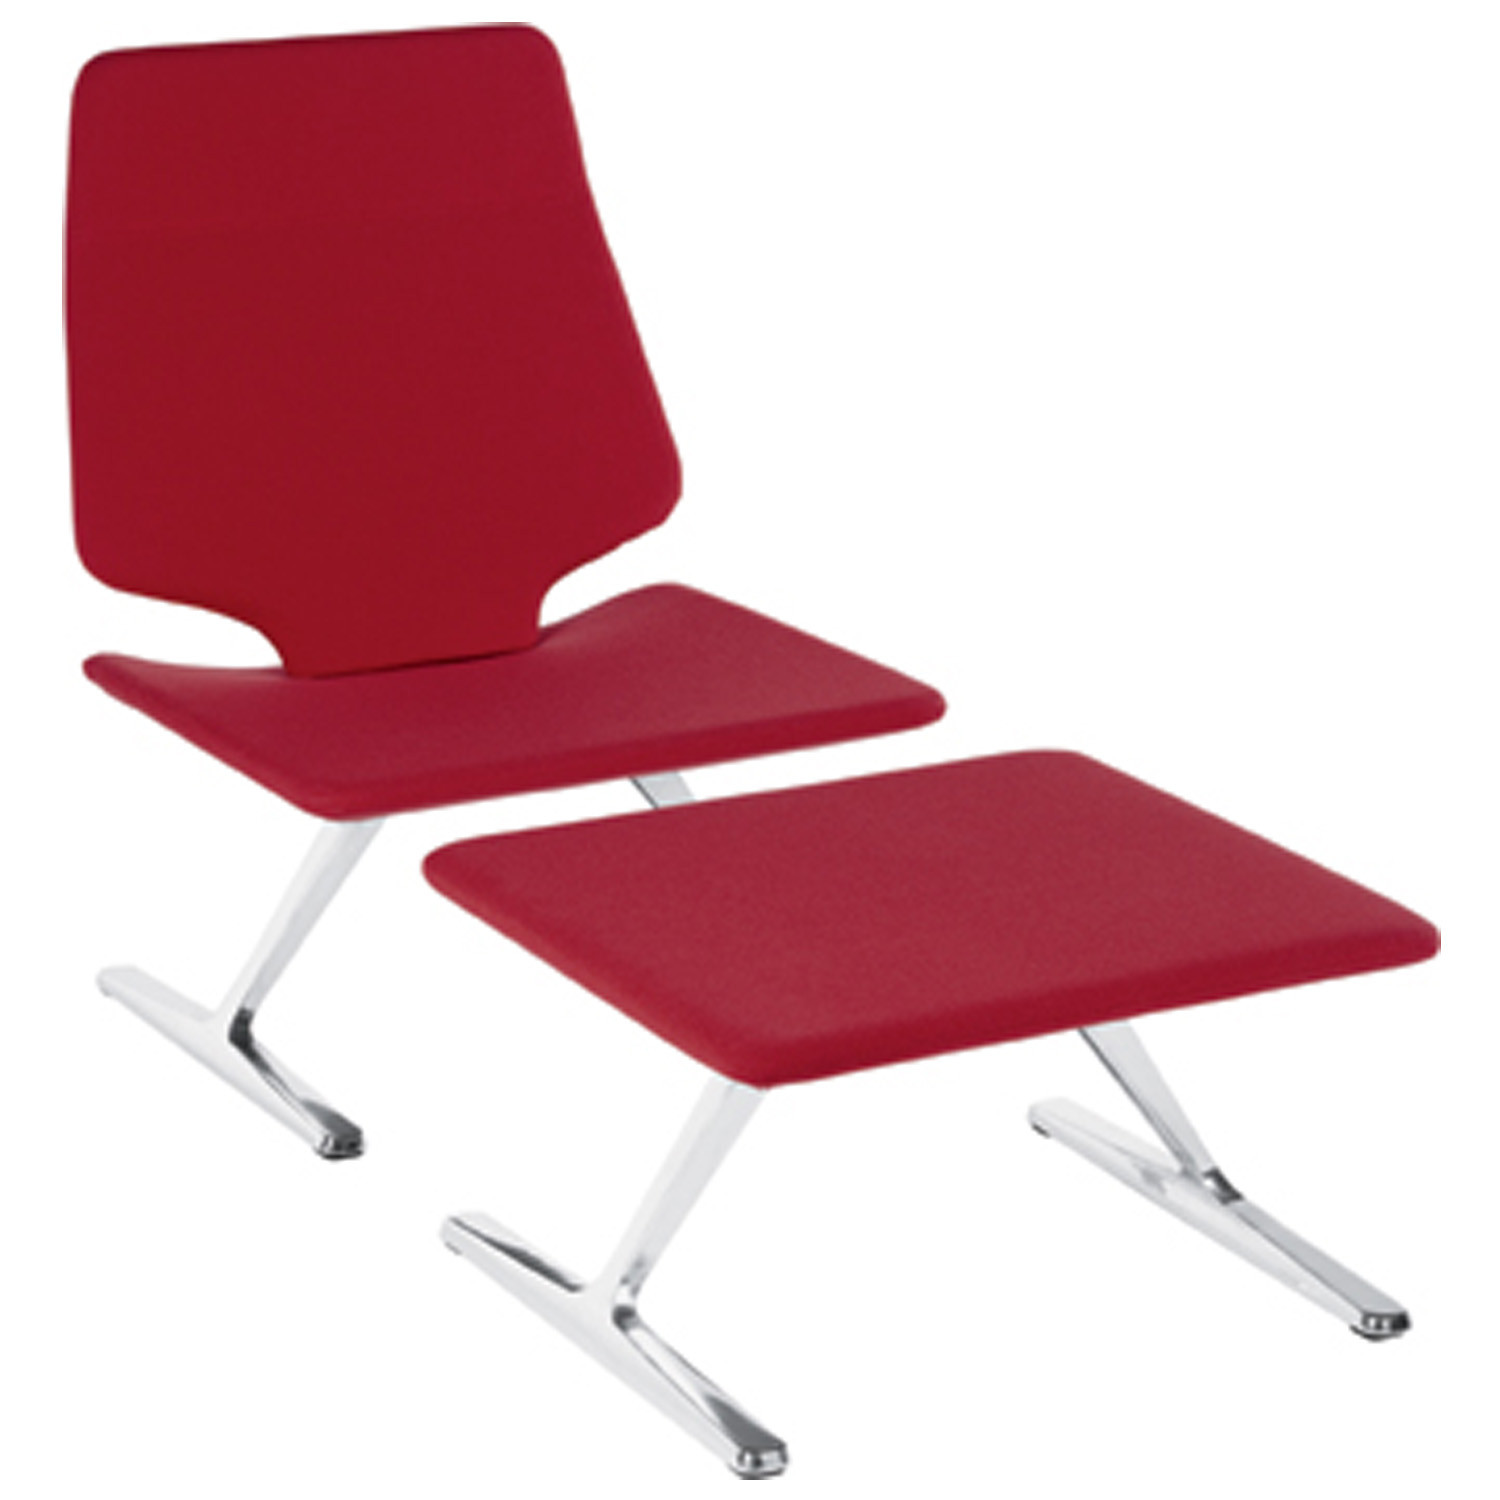 TT 628 Lounge Chair and TT 626 Footstool